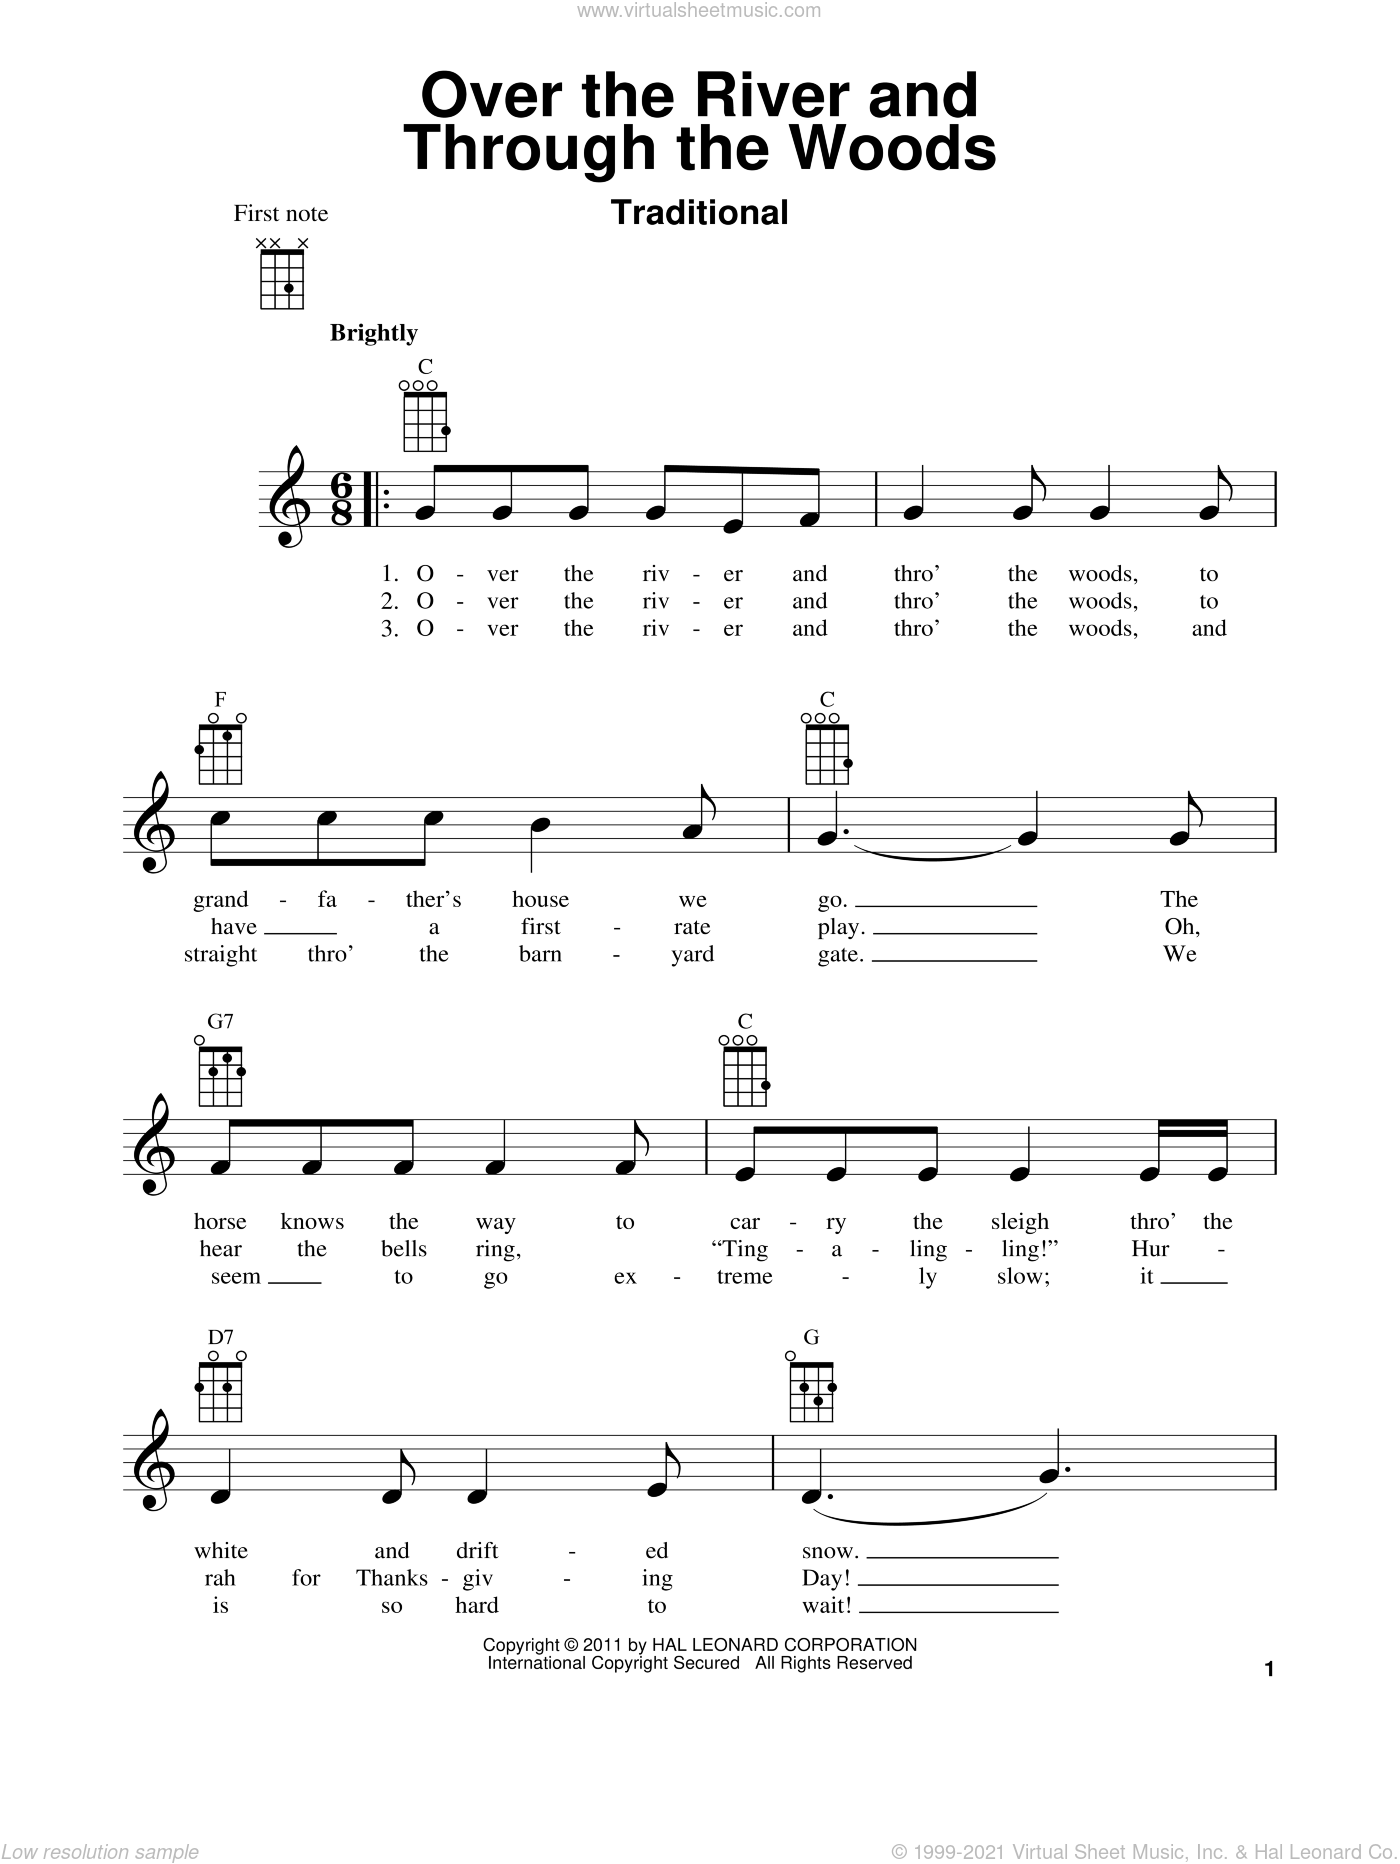 Over The River And Through The Woods sheet music for ukulele, intermediate skill level